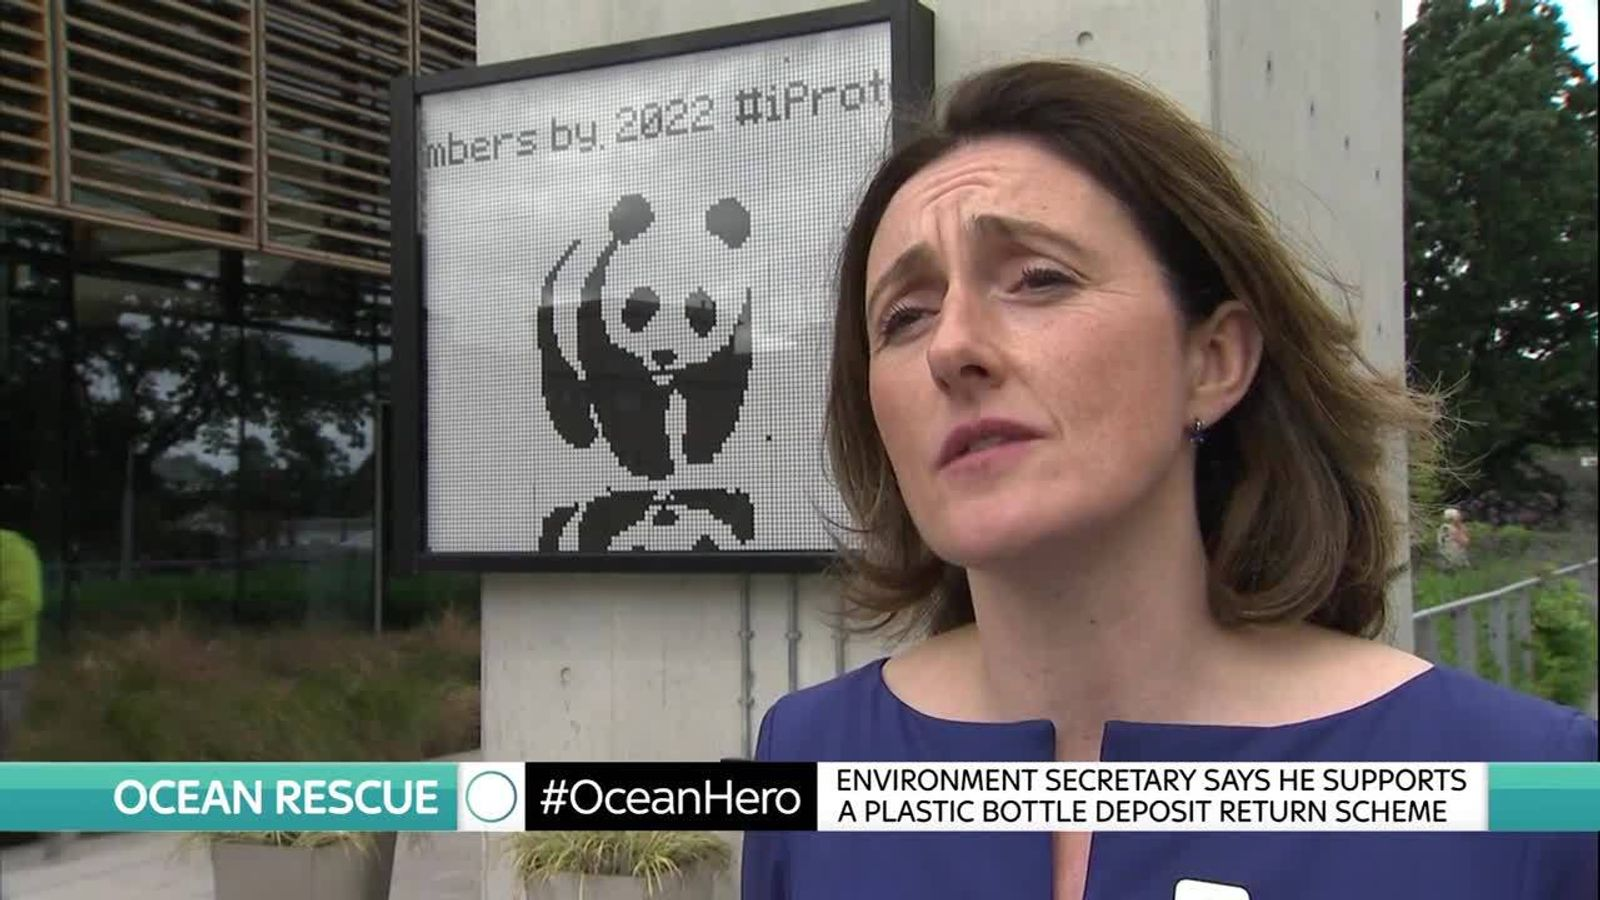 The chief executive of WWF calls for action to product sea creatures from plastic